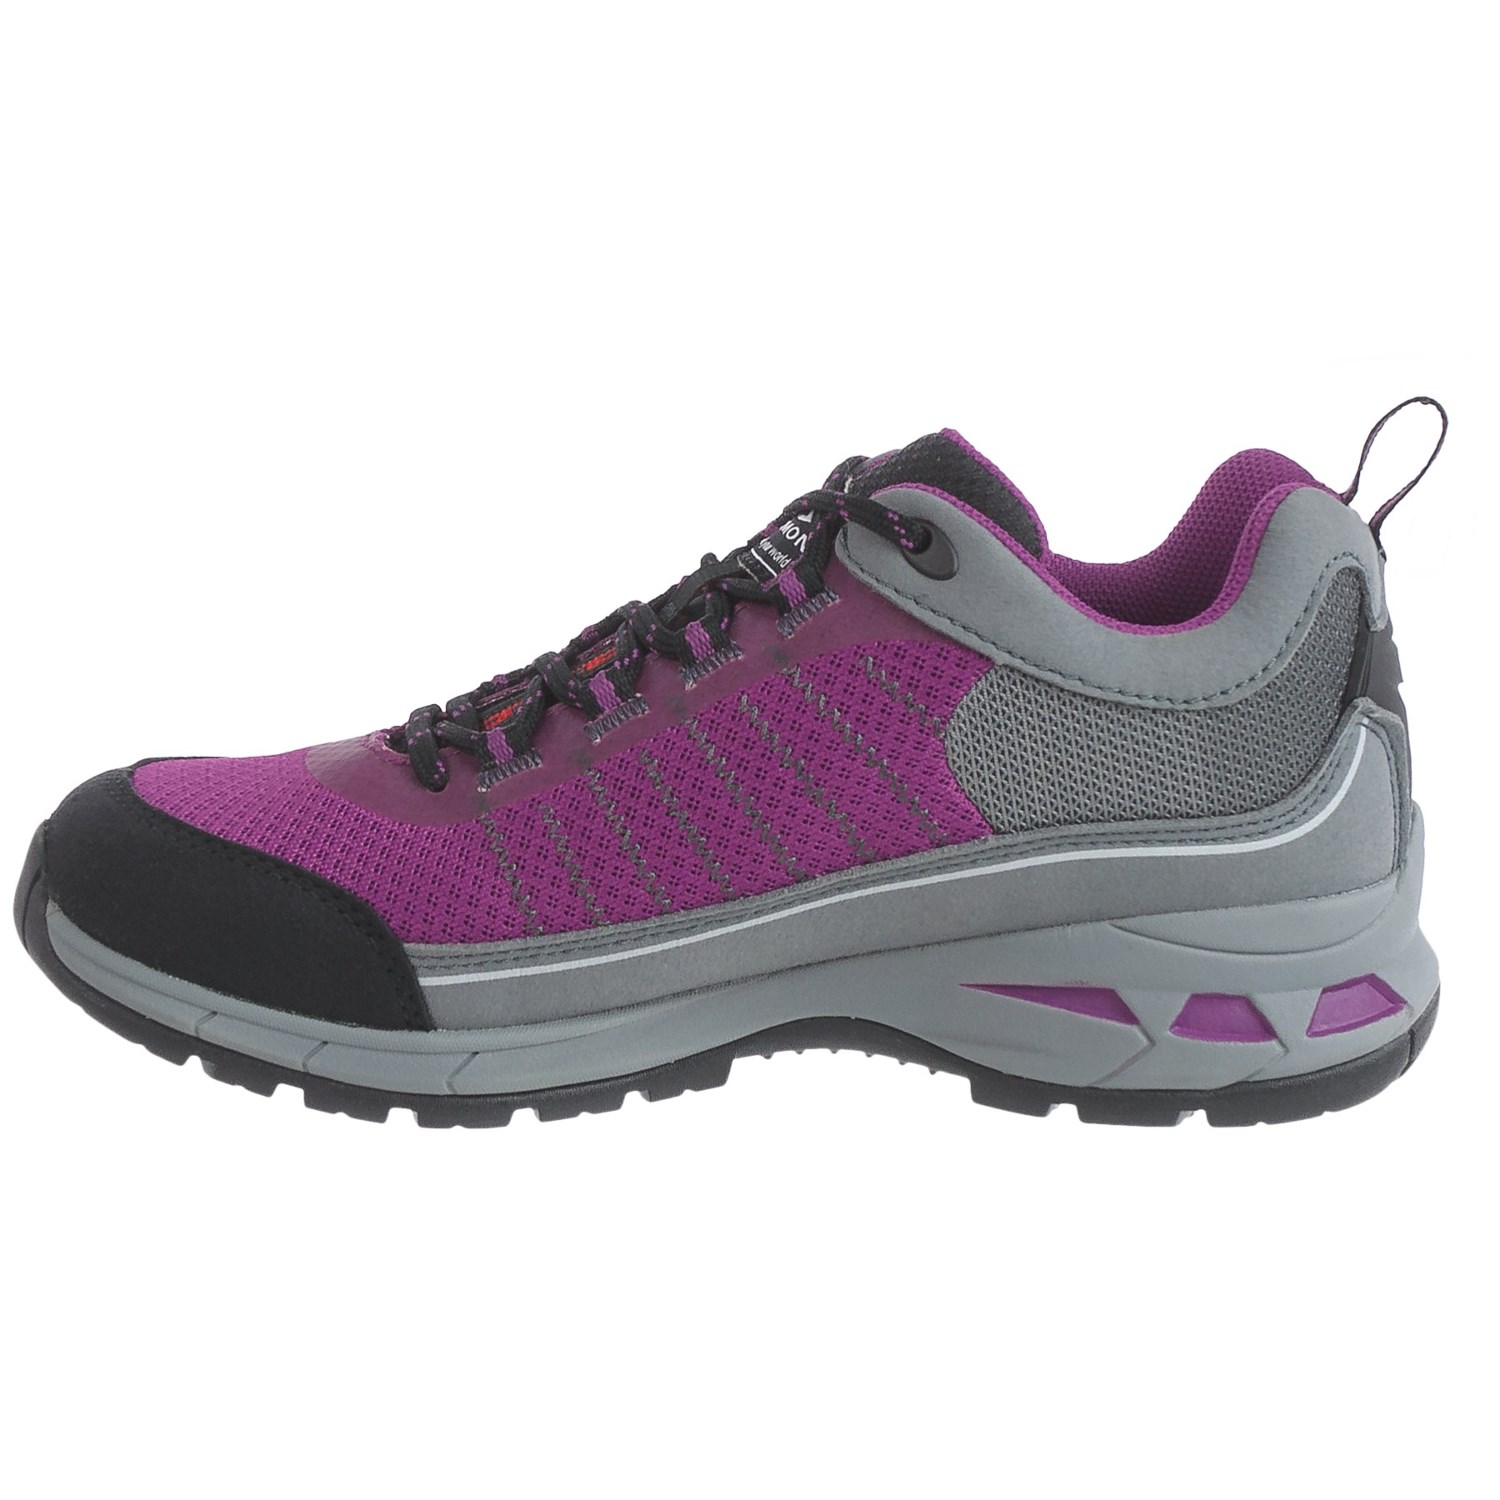 Garmont Nagevi Vented Hiking Shoes For Women Save 66